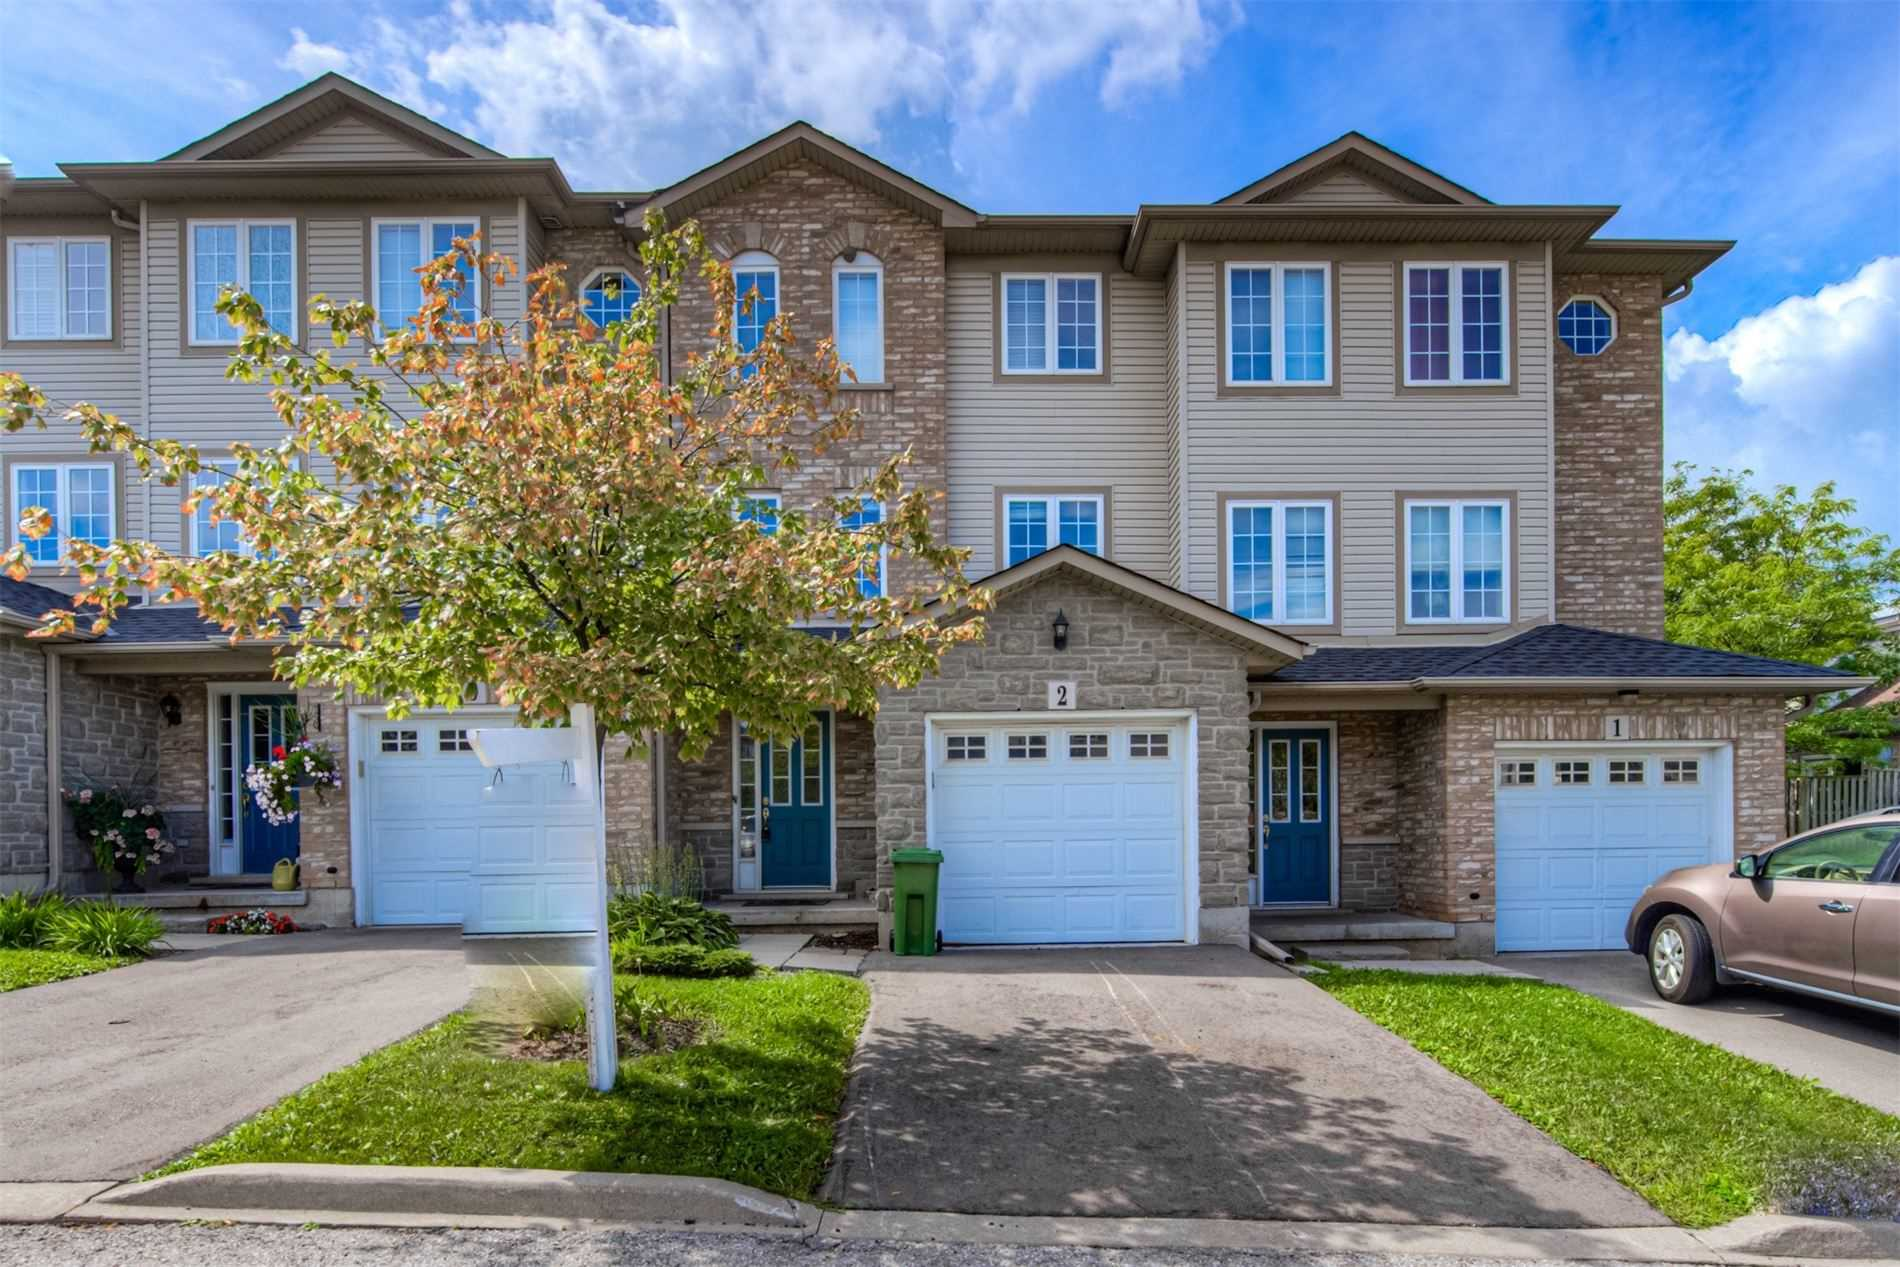 Condo Townhouse For Sale In Hamilton , 3 Bedrooms Bedrooms, ,3 BathroomsBathrooms,Condo Townhouse,For Sale,2,Southside